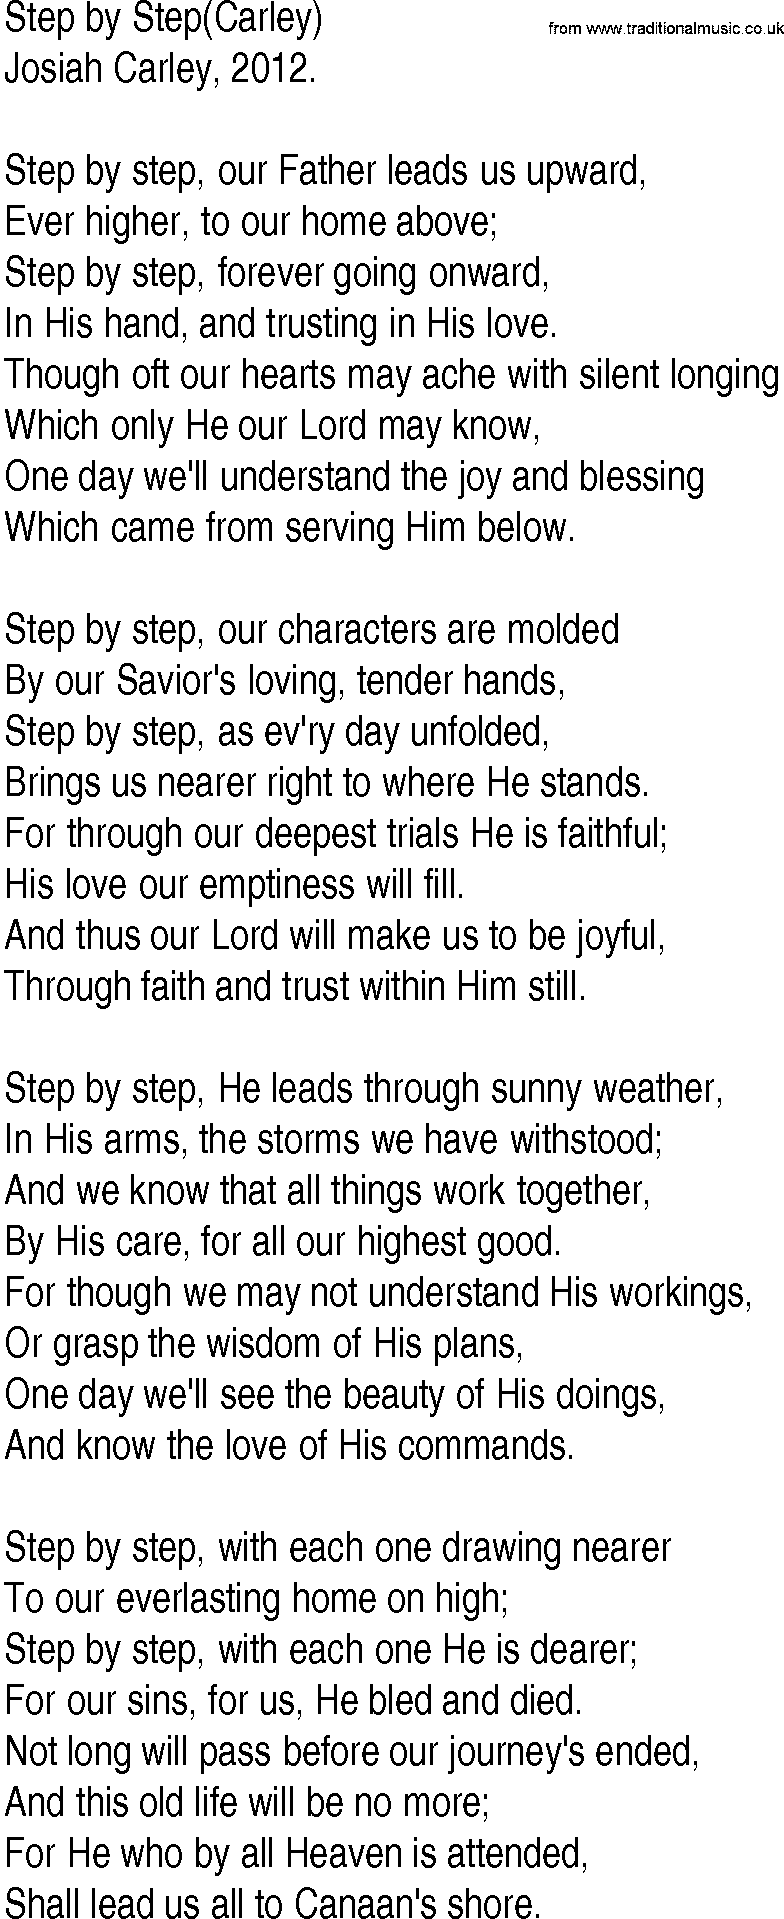 Hymn and Gospel Song Lyrics for Step by Step(Carley) by ...